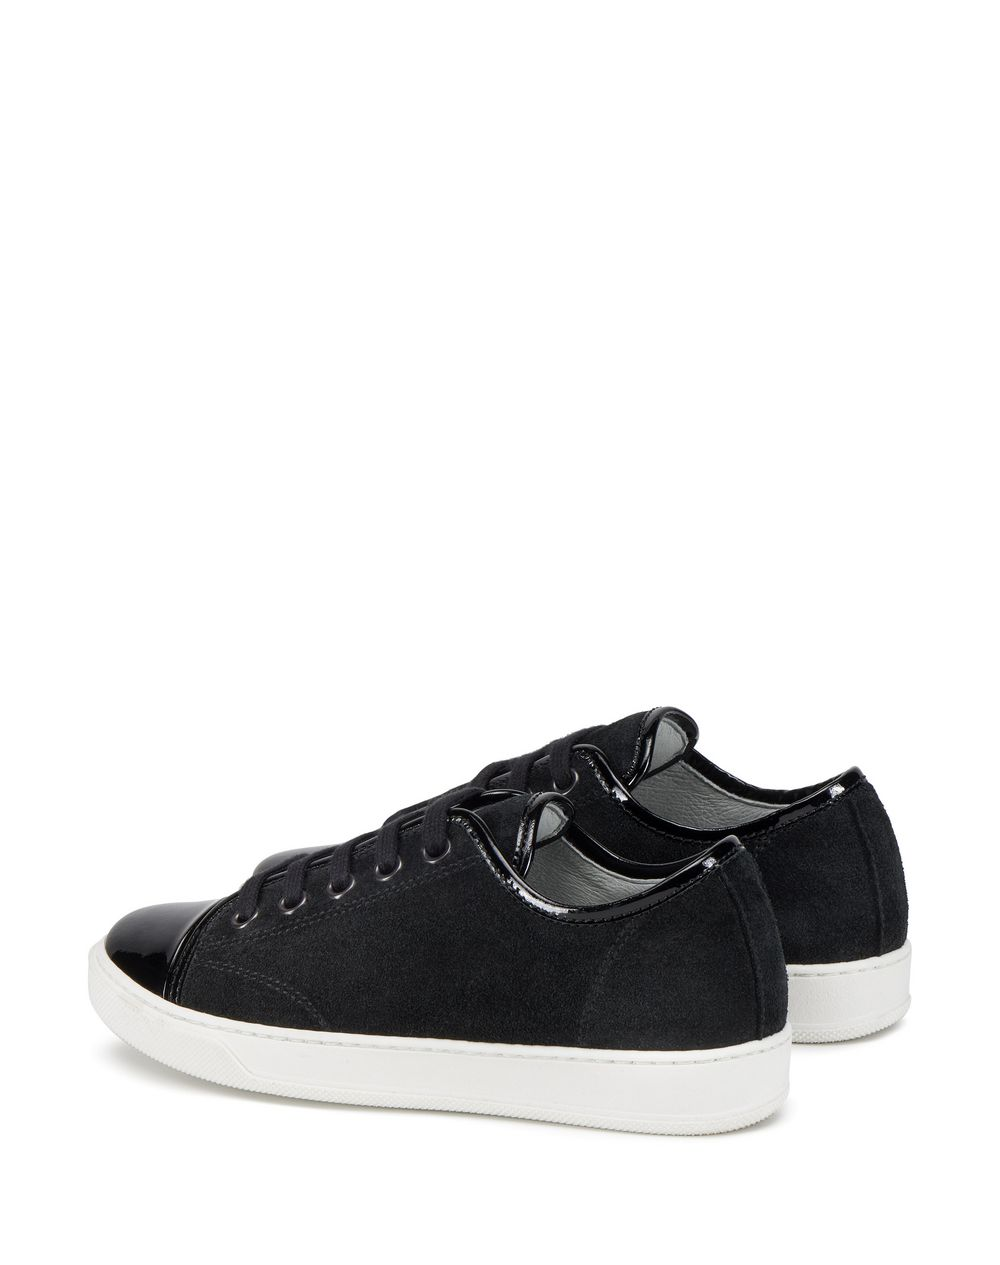 BLACK SNEAKERS    - Lanvin